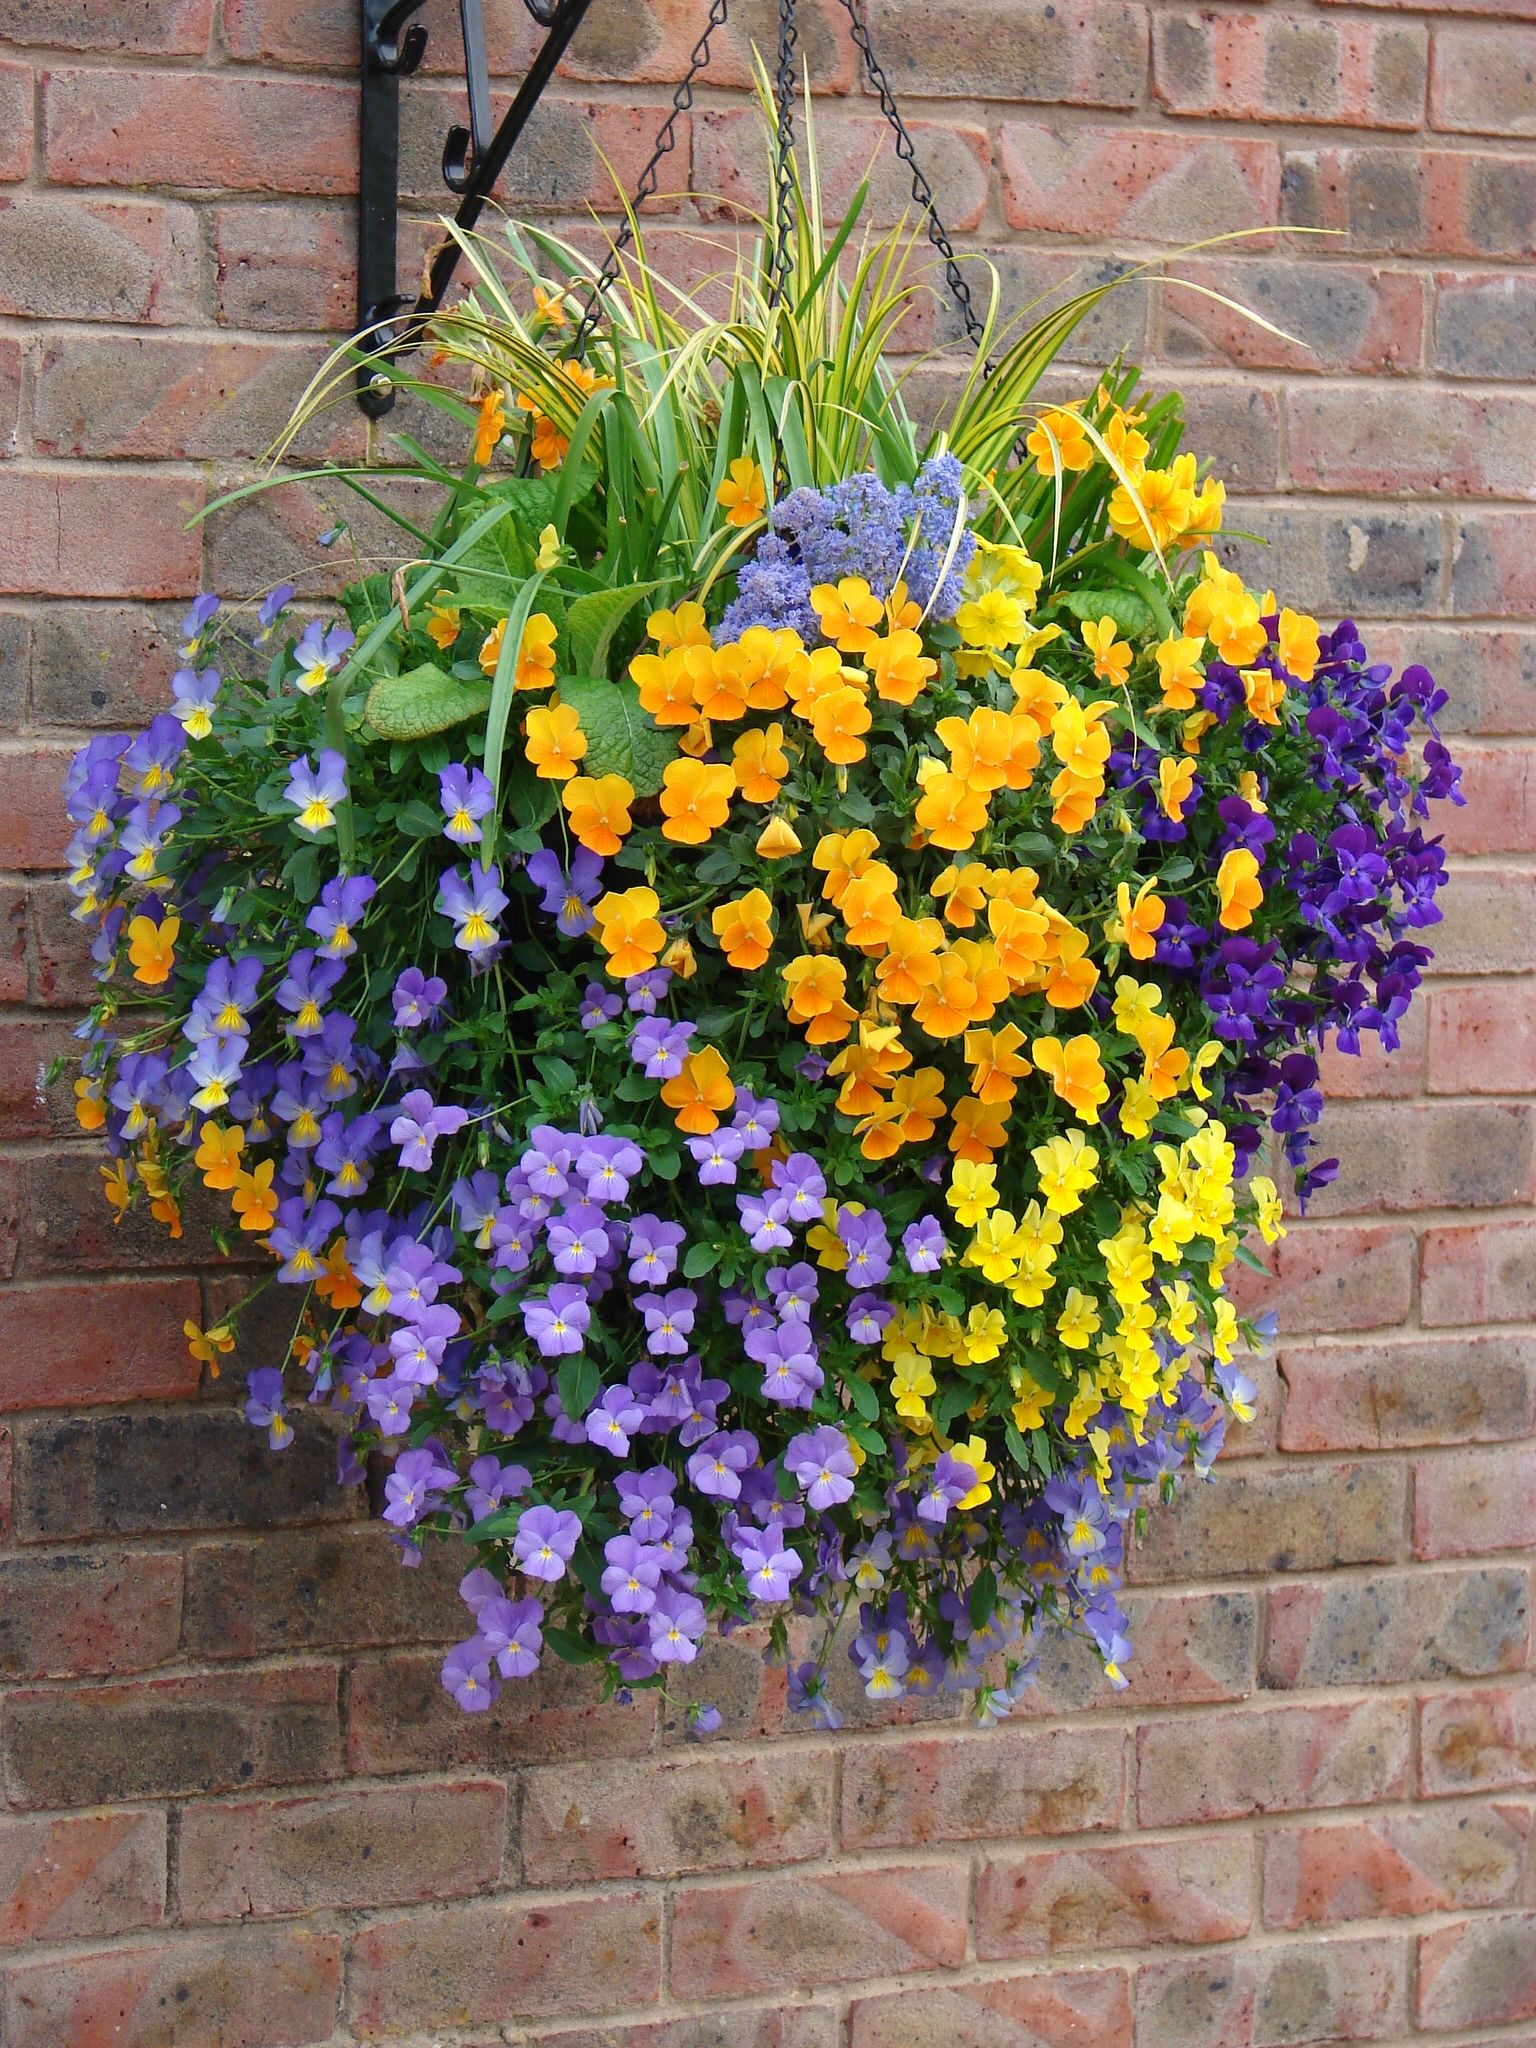 Potted Plants And The Necessary Spring Care: Home / Hanging Baskets / Spring